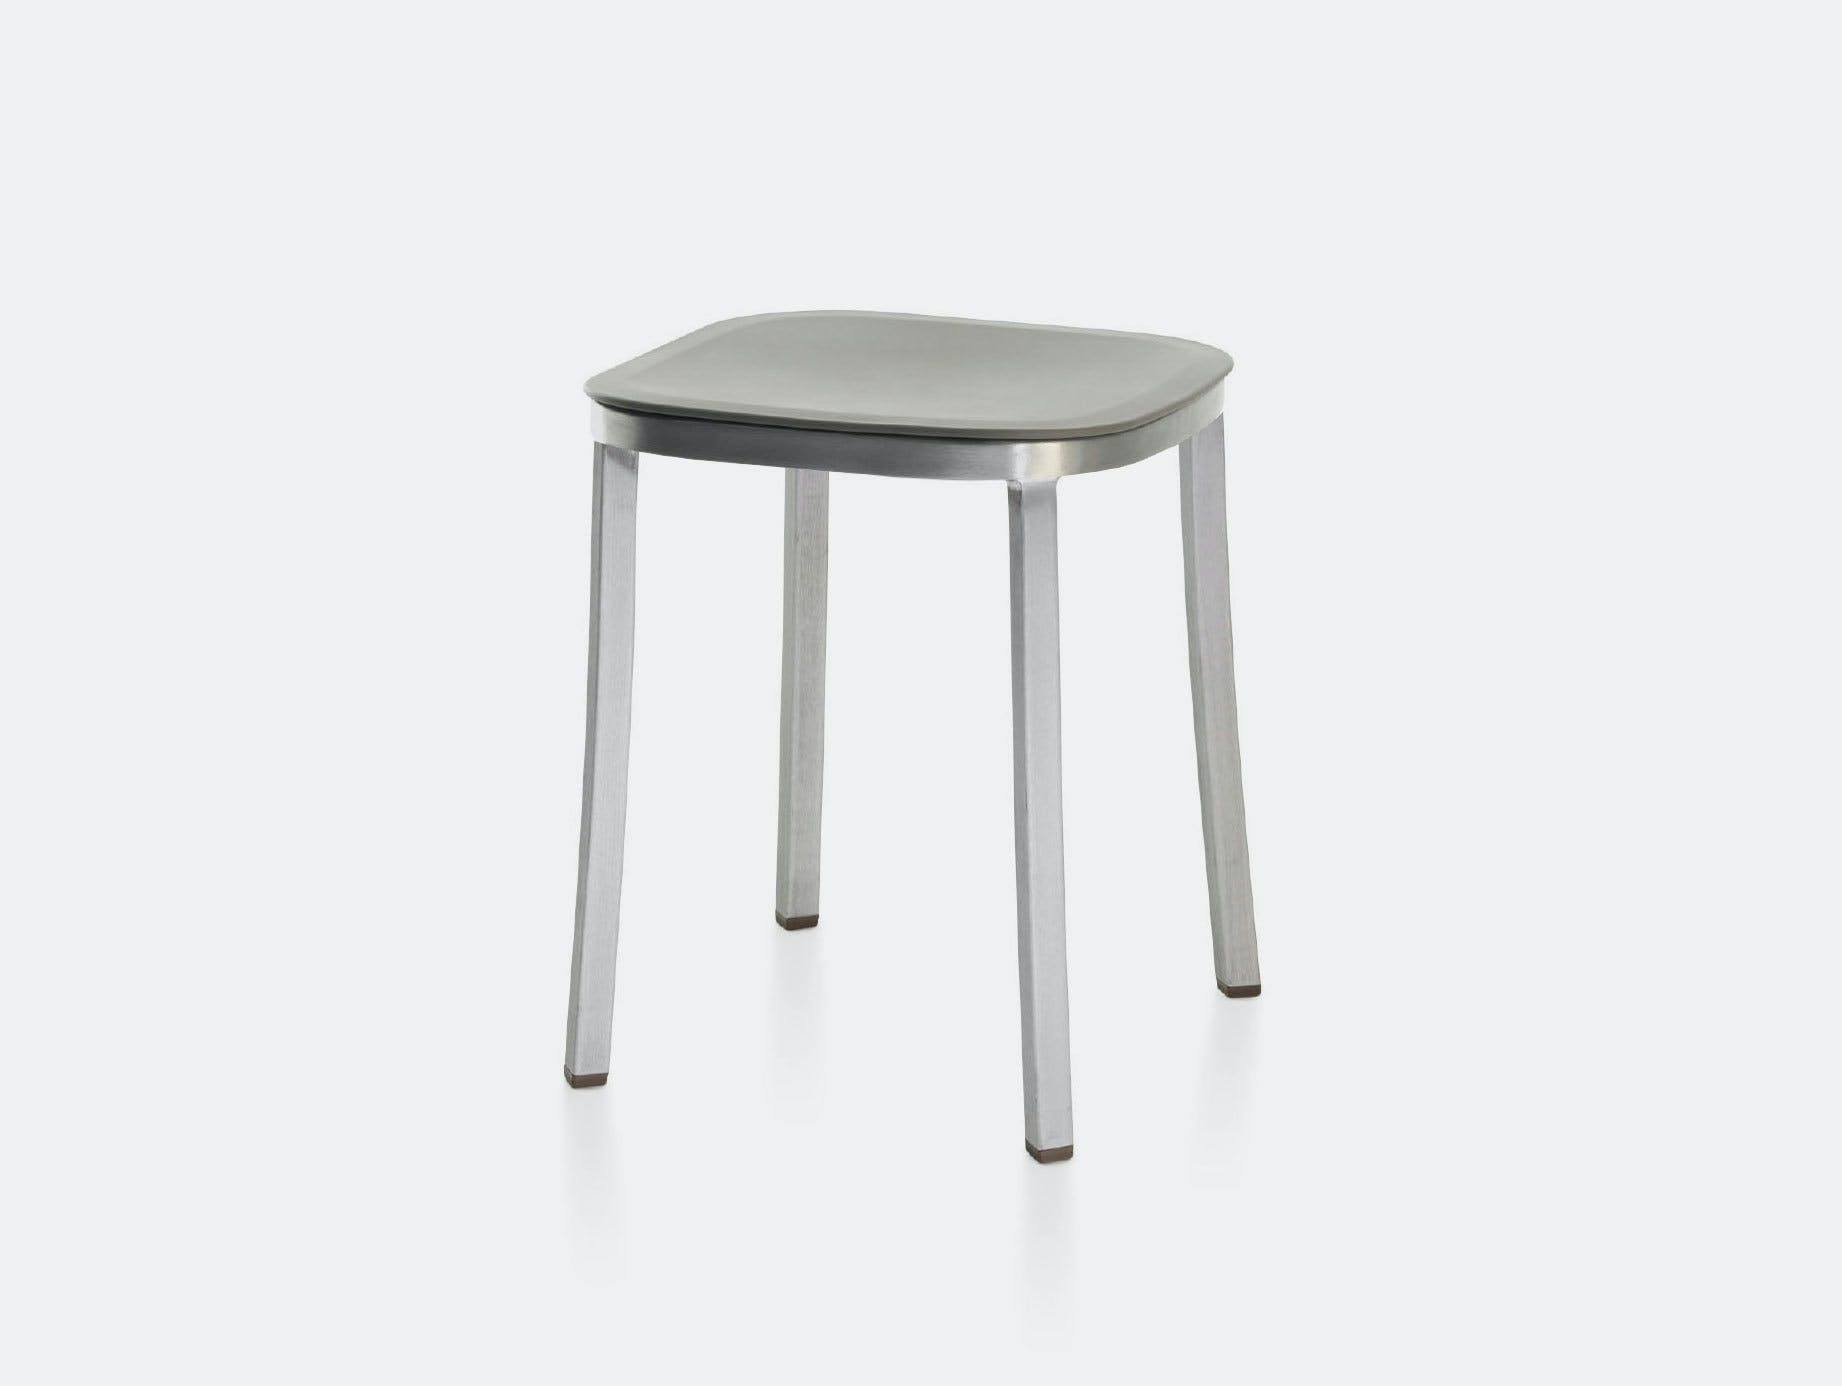 Emeco 1 Inch Small Stool light grey Jasper Morrison